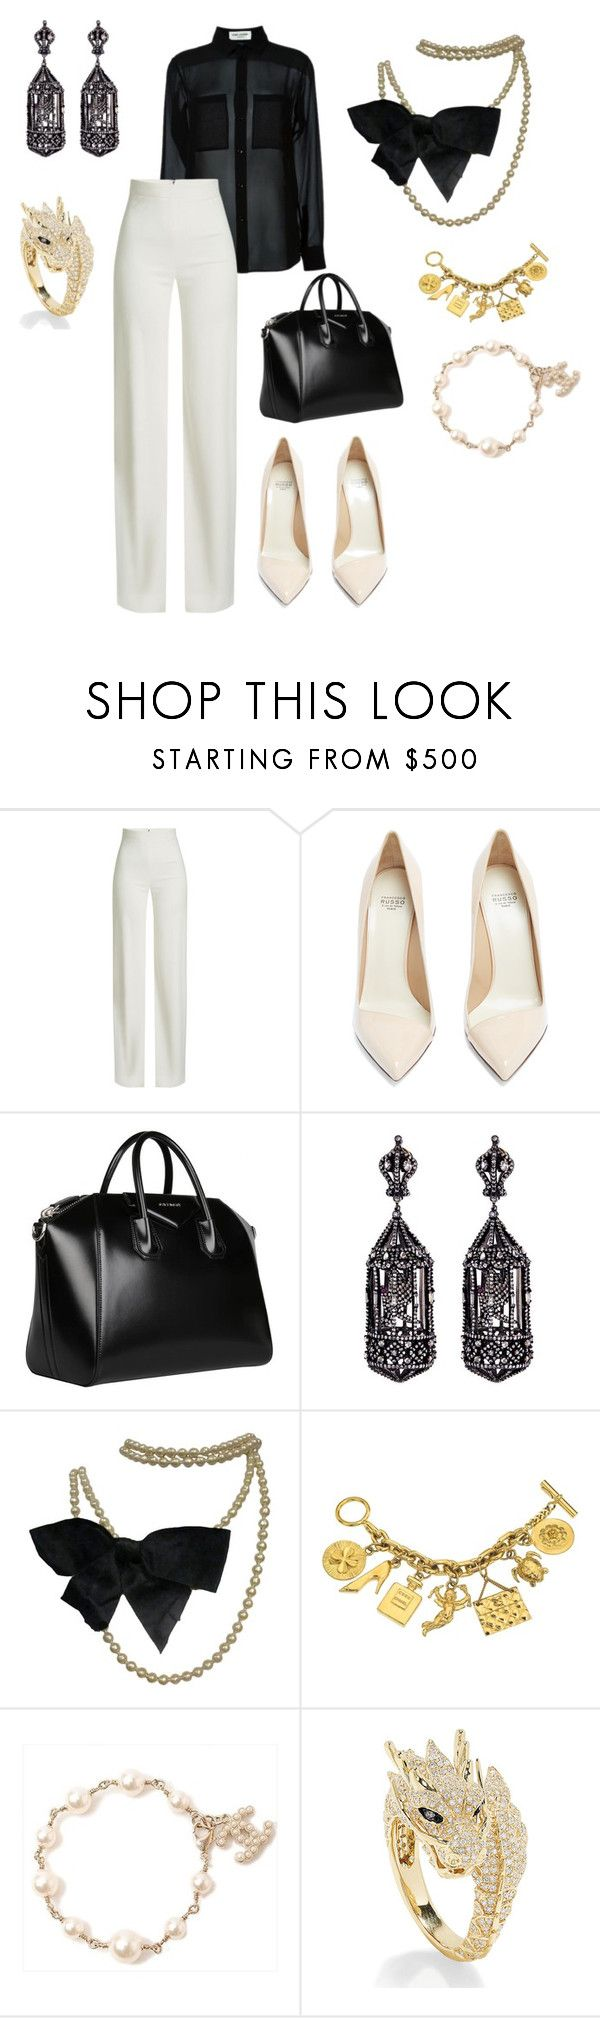 """Untitled #312"" by iamgae on Polyvore featuring Yves Saint Laurent, Brandon Maxwell, Francesco Russo, Givenchy, Amrapali, Chanel and Effy Jewelry"